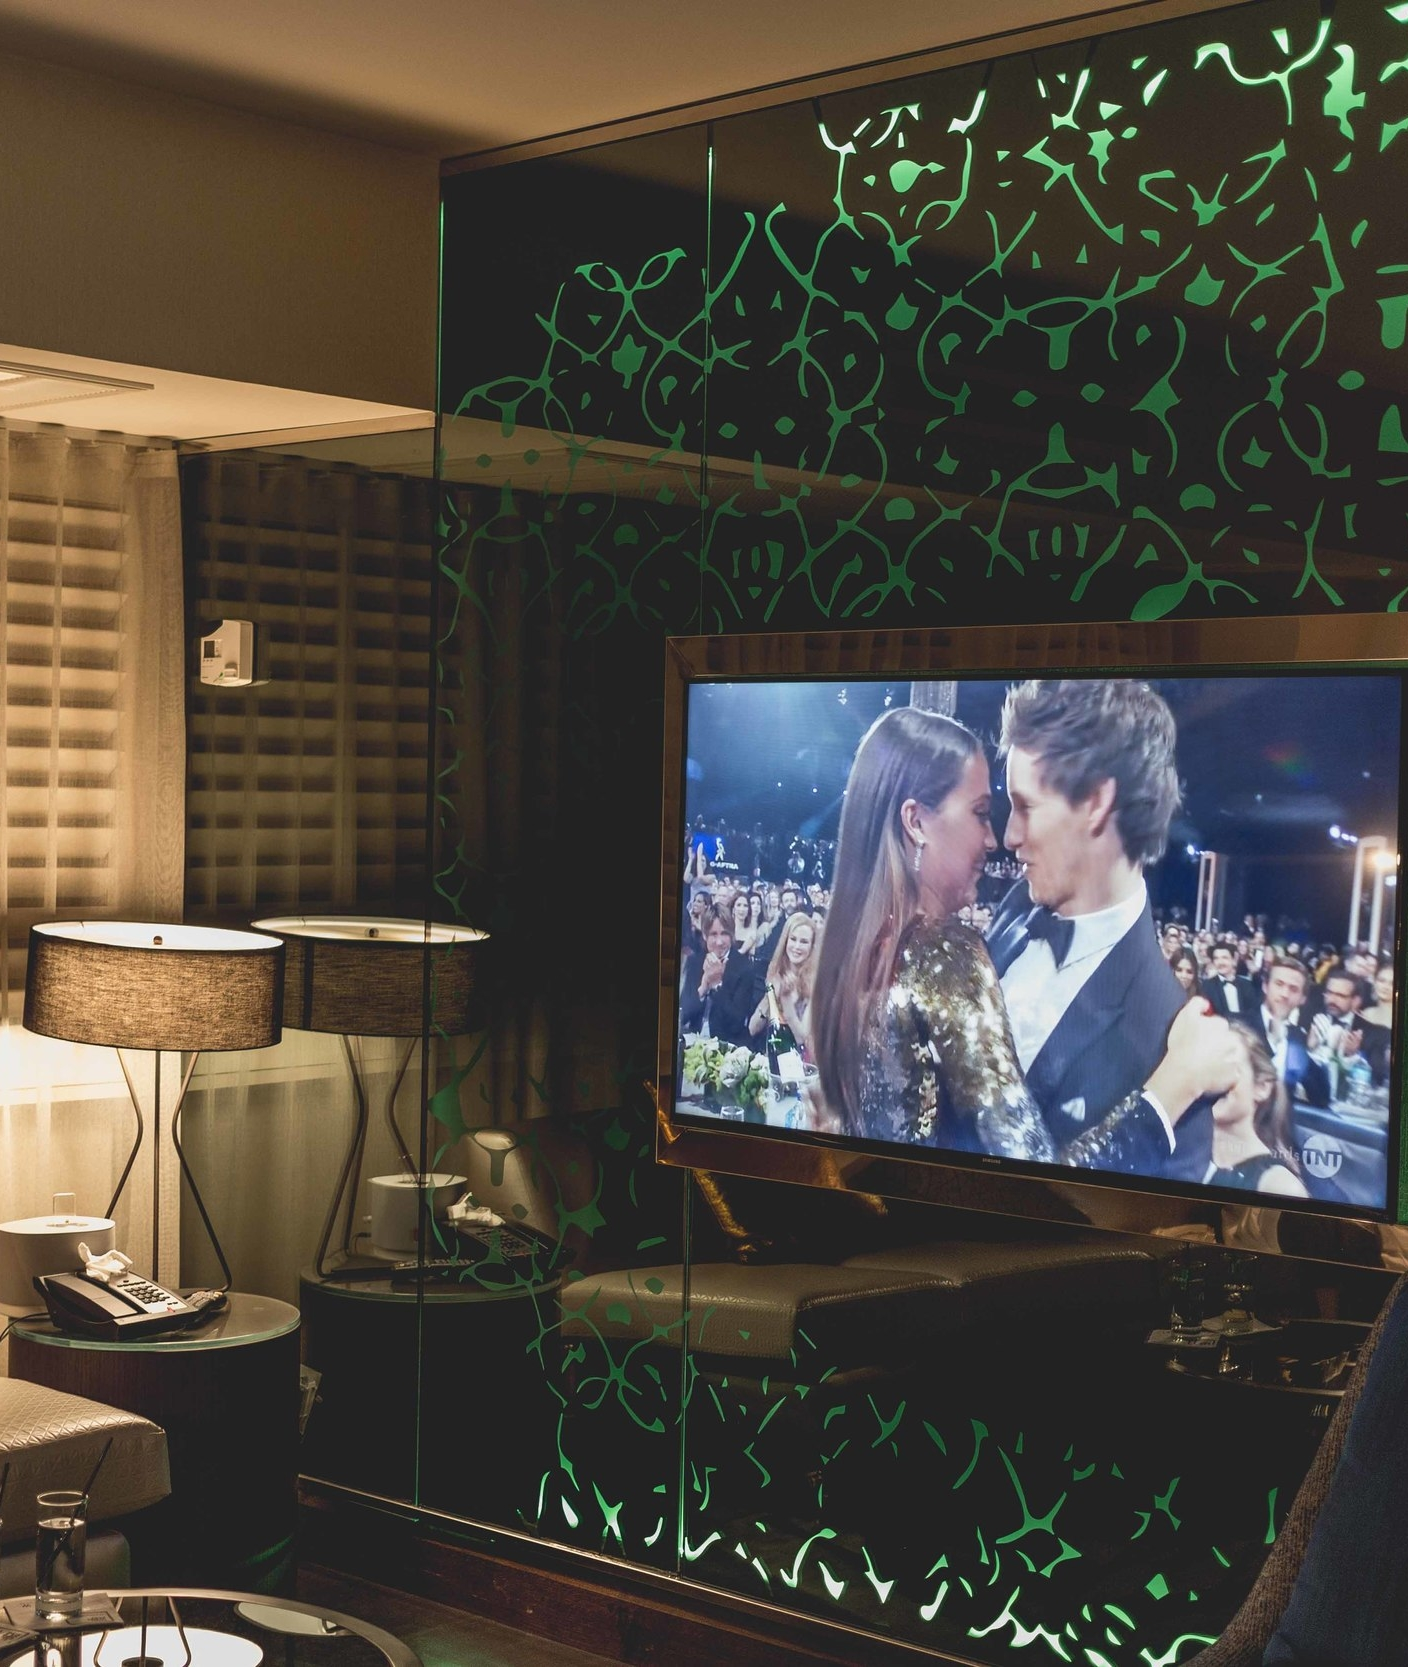 mybelonging-whotels-west-beverly-hills-EWOW-suite-40.jpg